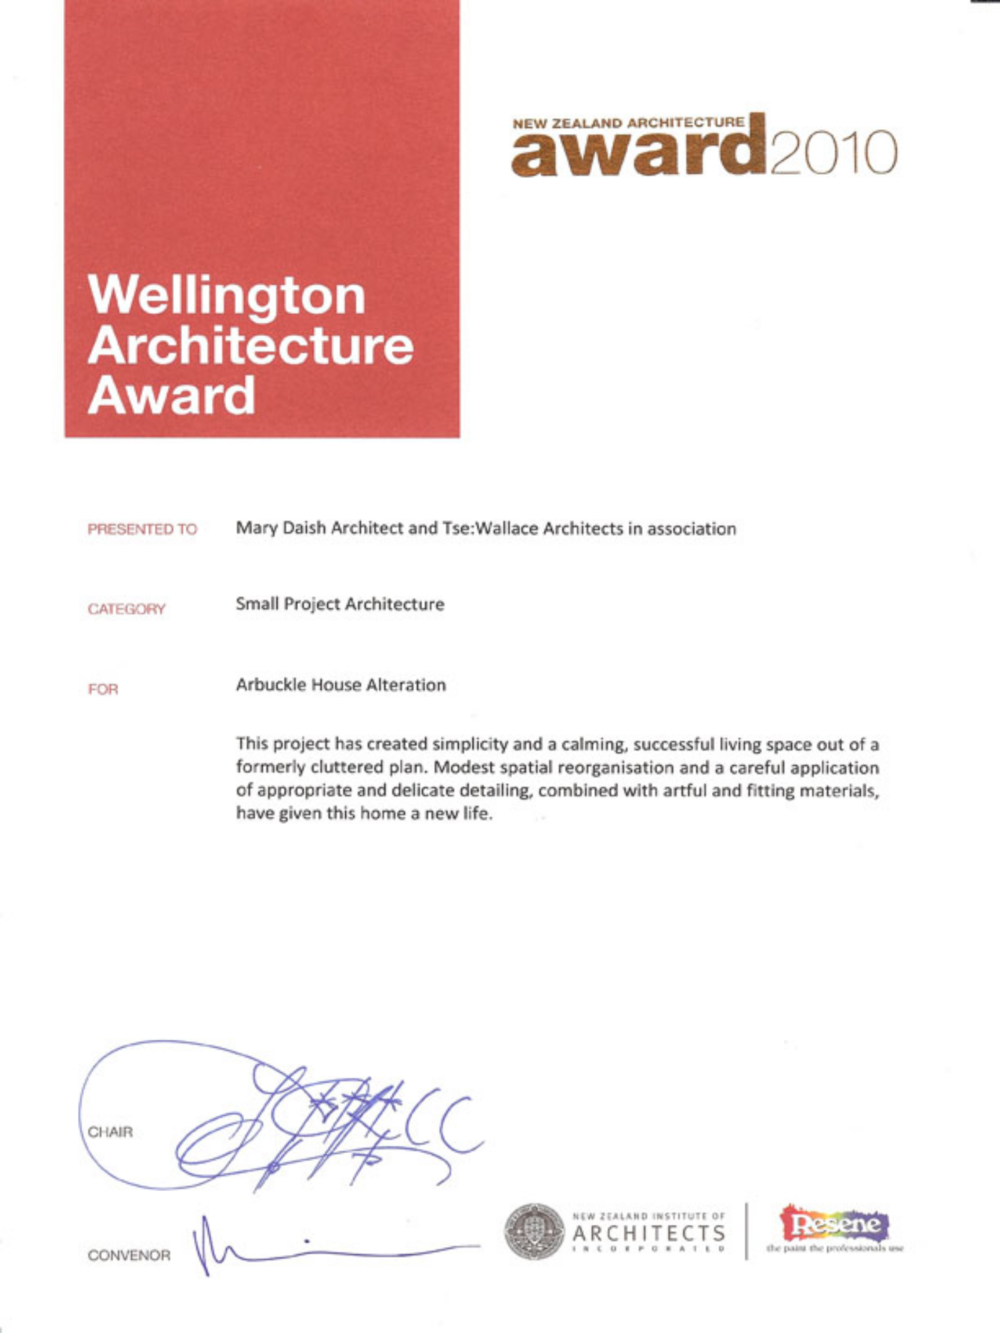 NZIA - New Zealand Institute of Architects Local Architecture Award 2010